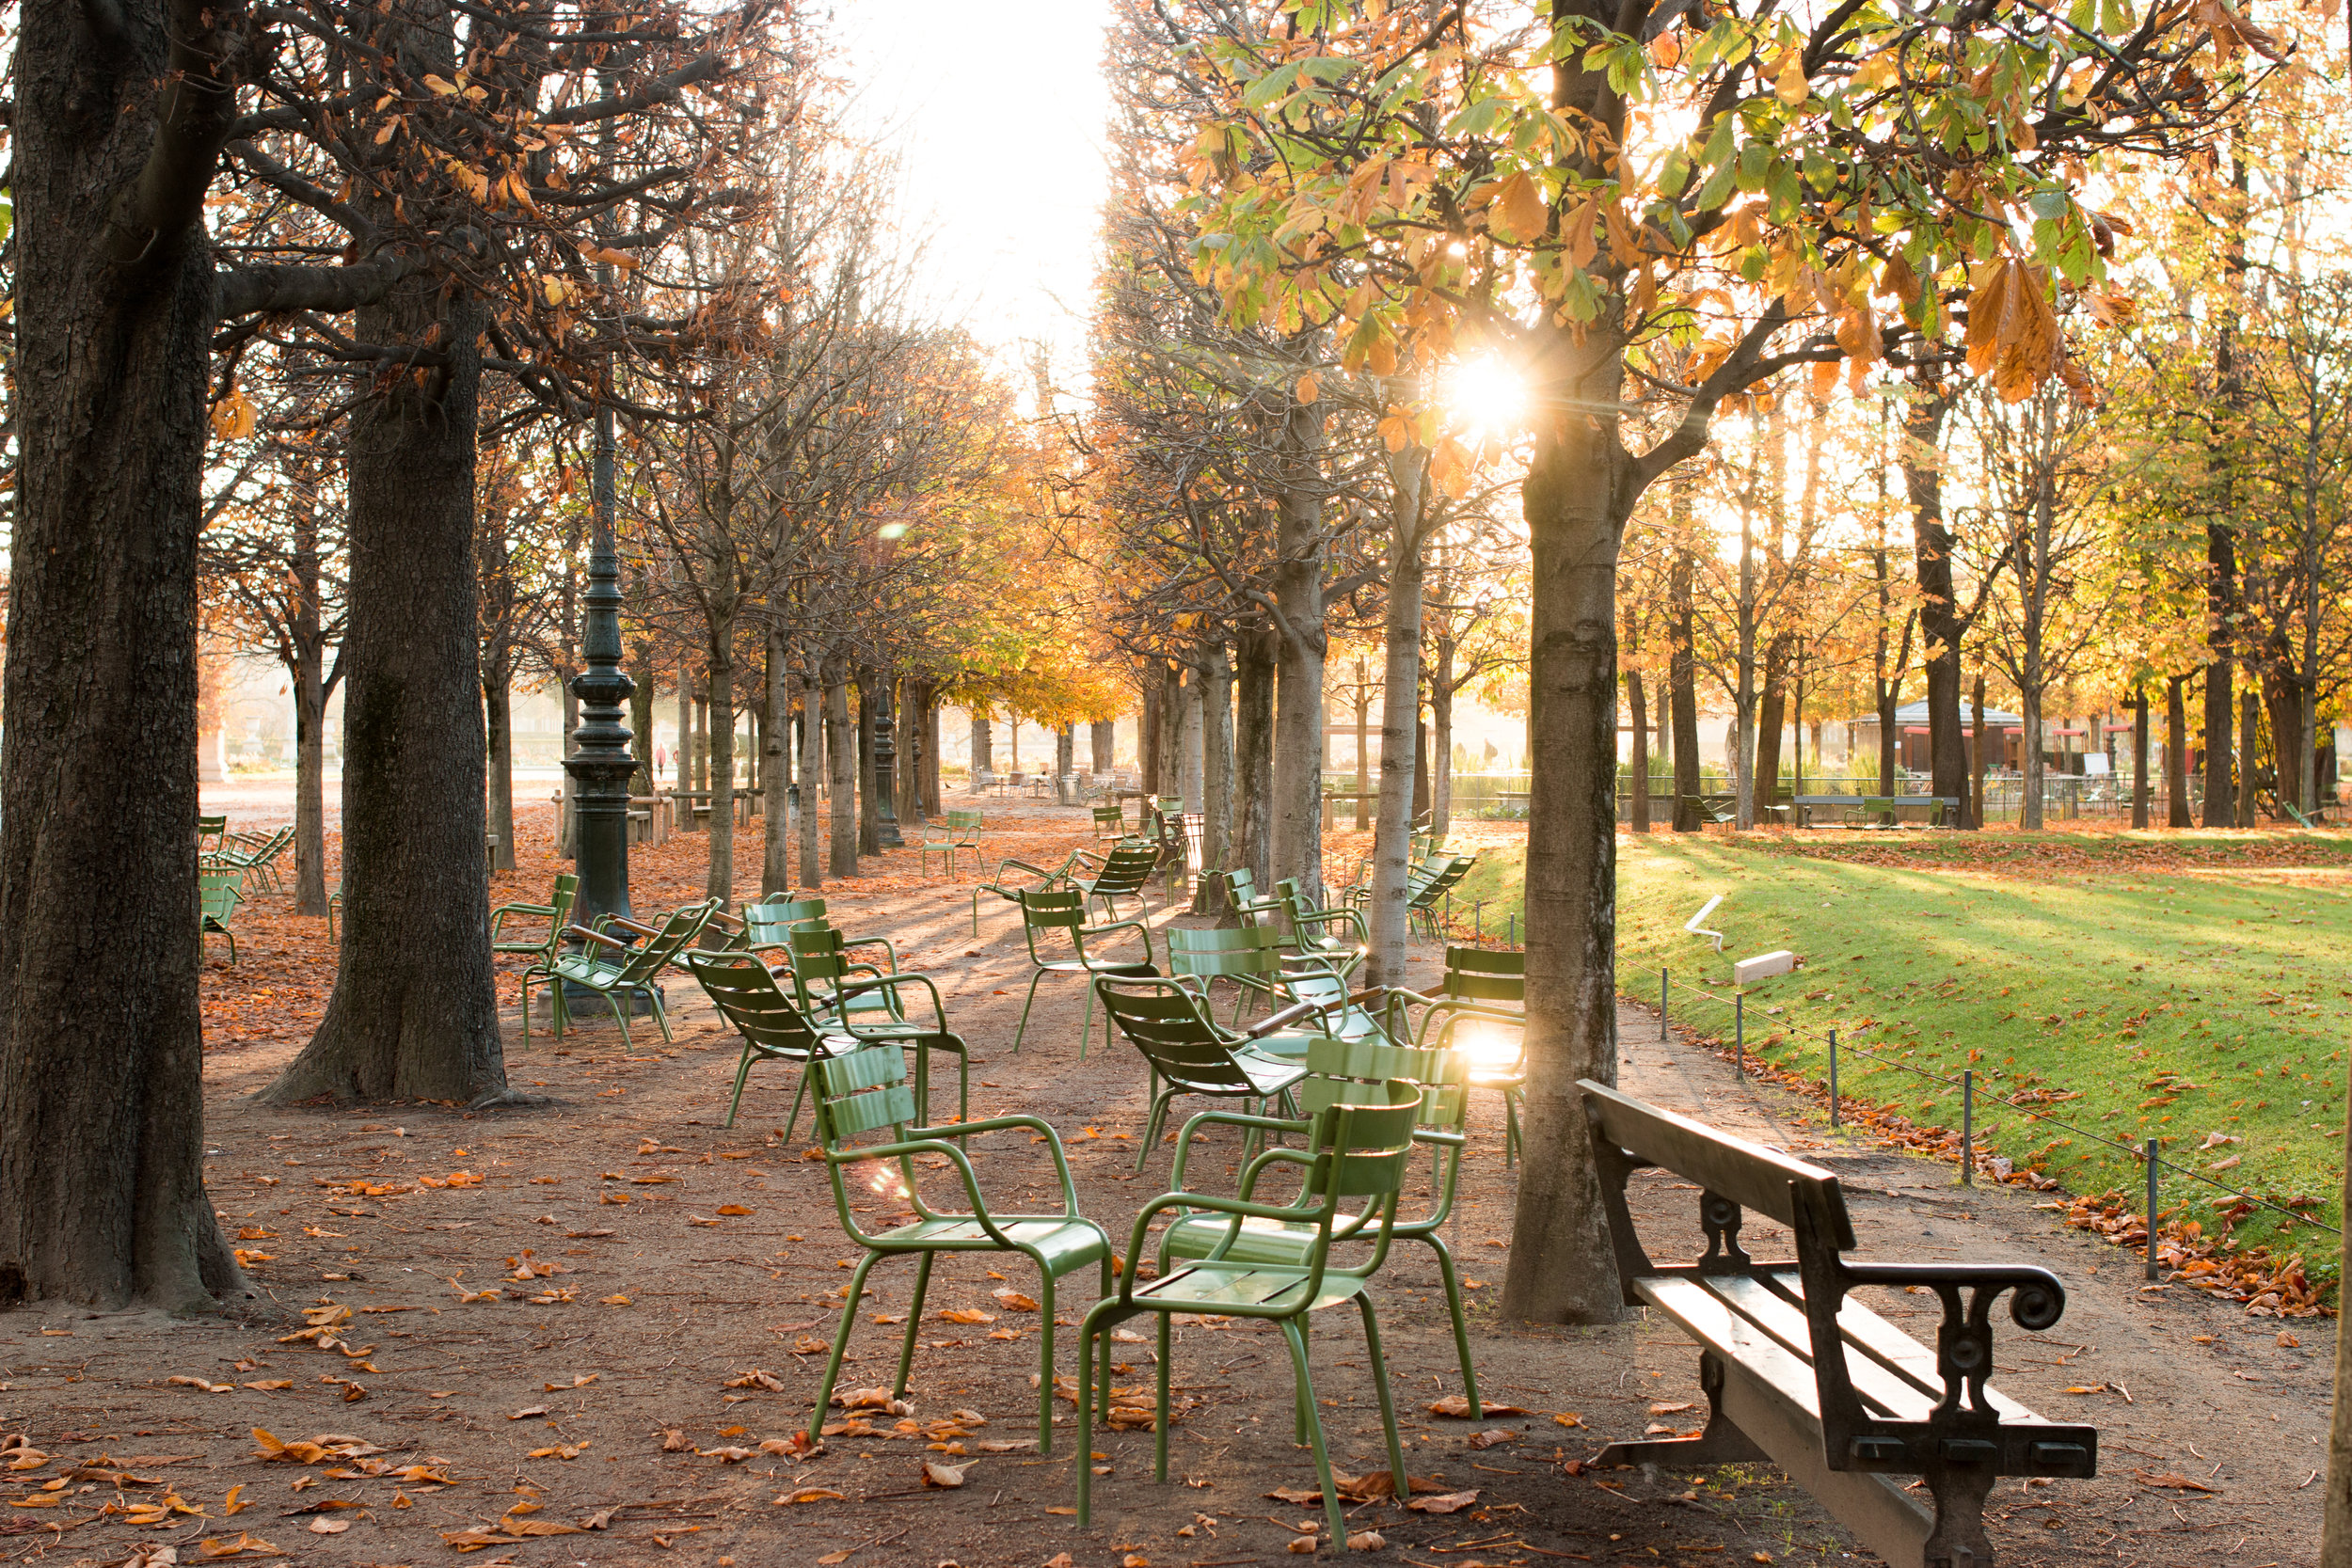 paris in the autumn by rebecca plotnick